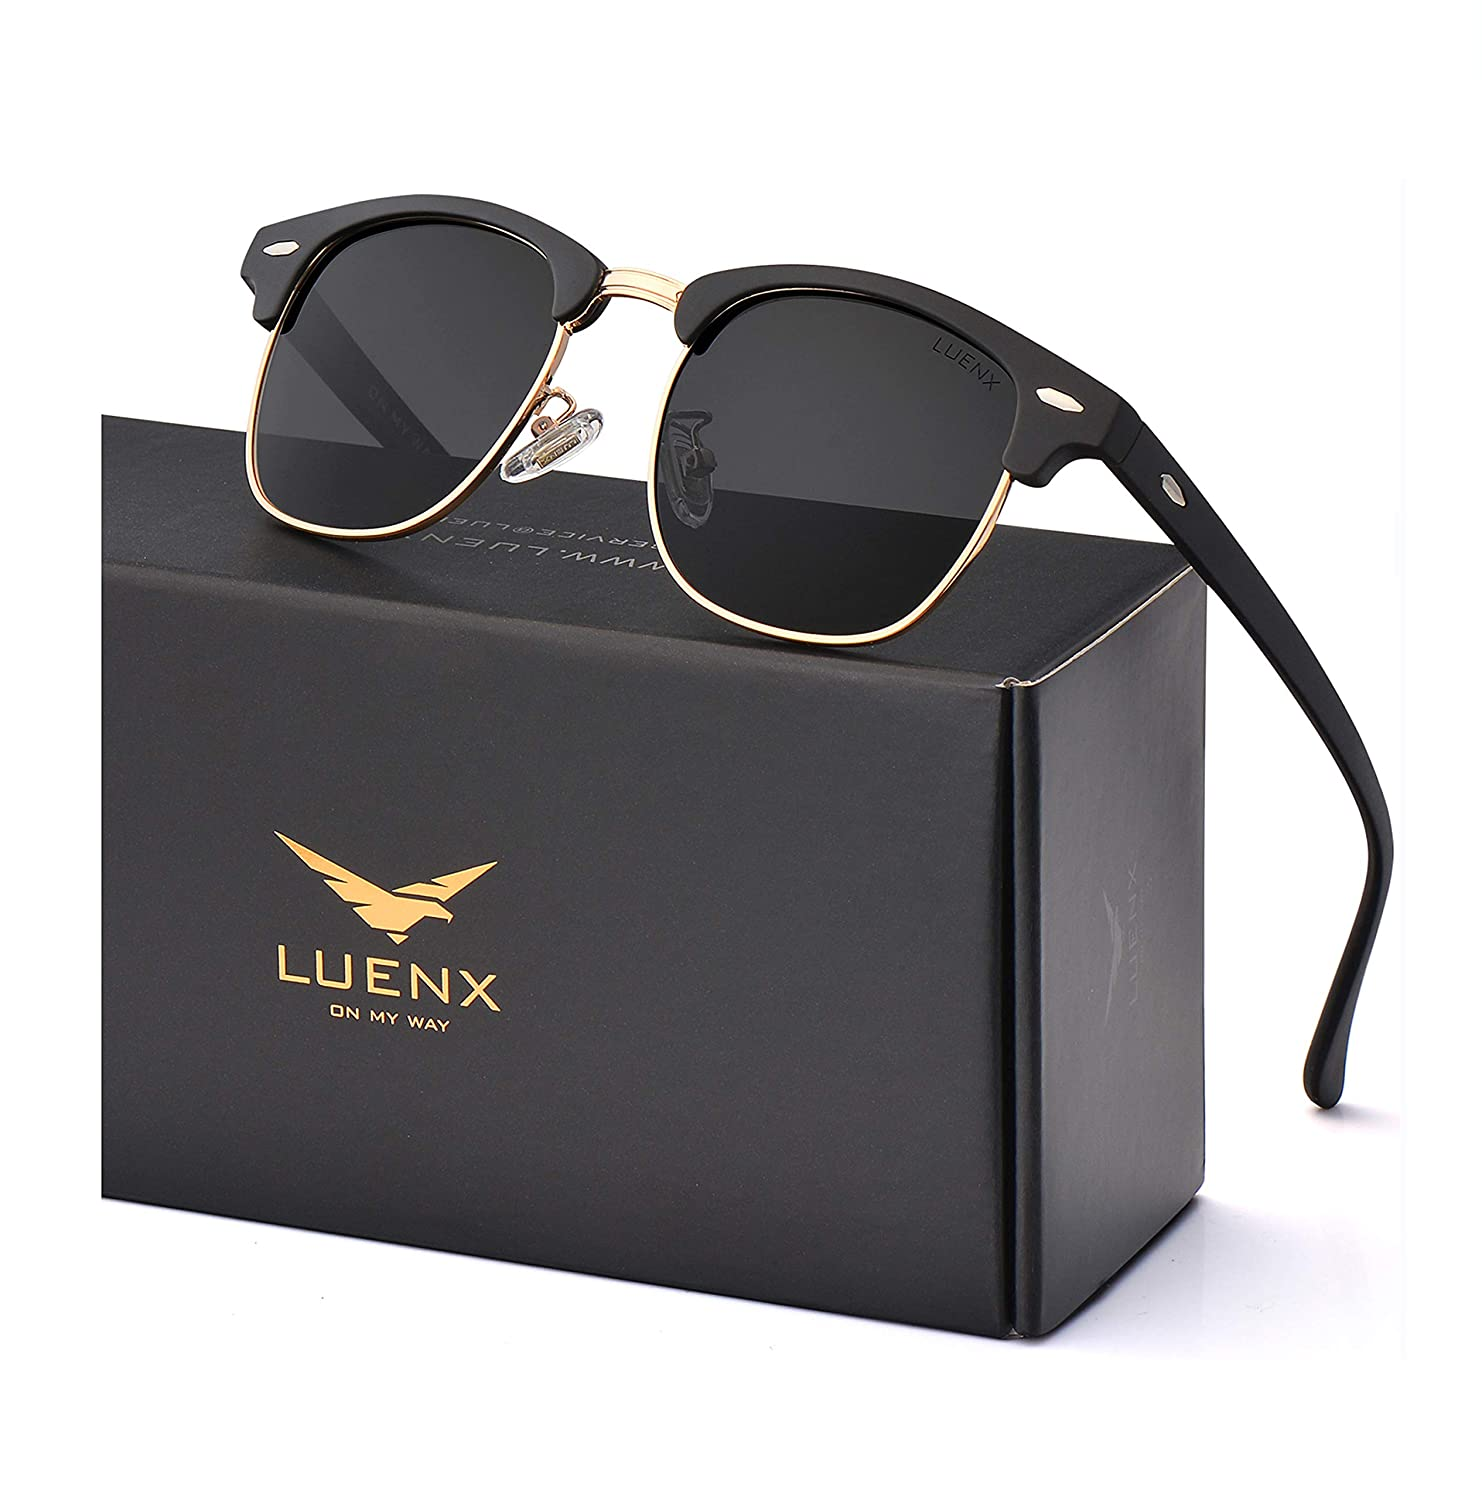 1fbccf154be2 Amazon.com: LUENX Men Women Semi Rimless Polarized Sunglasses:UV 400  Protection 51MM with Case (23 Black(Matte Frame)/Non-Mirror, 51): Sports &  Outdoors